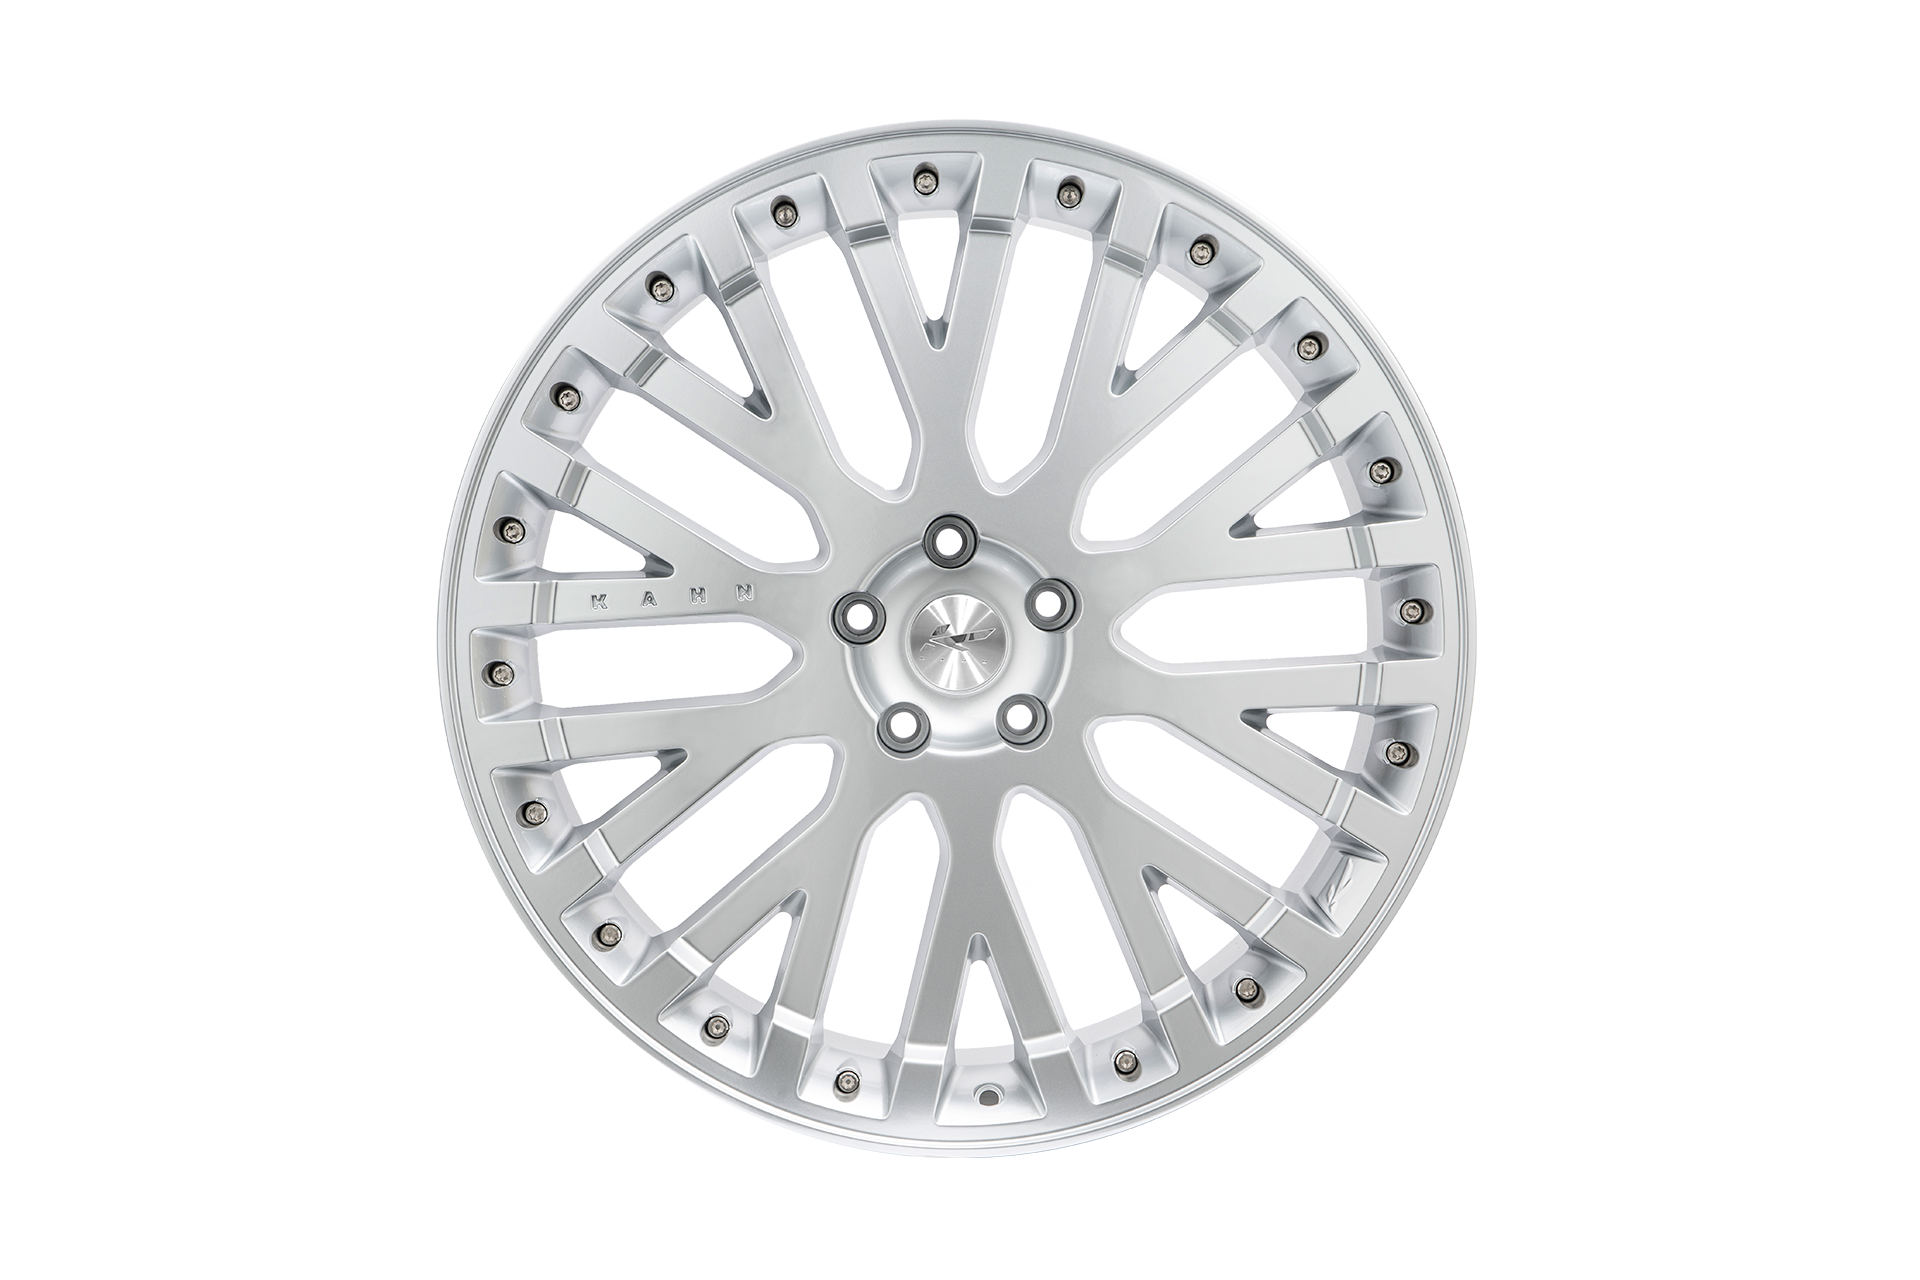 Bmw X5 (2006-2018) Rsx Light Alloy Wheels Image 4611